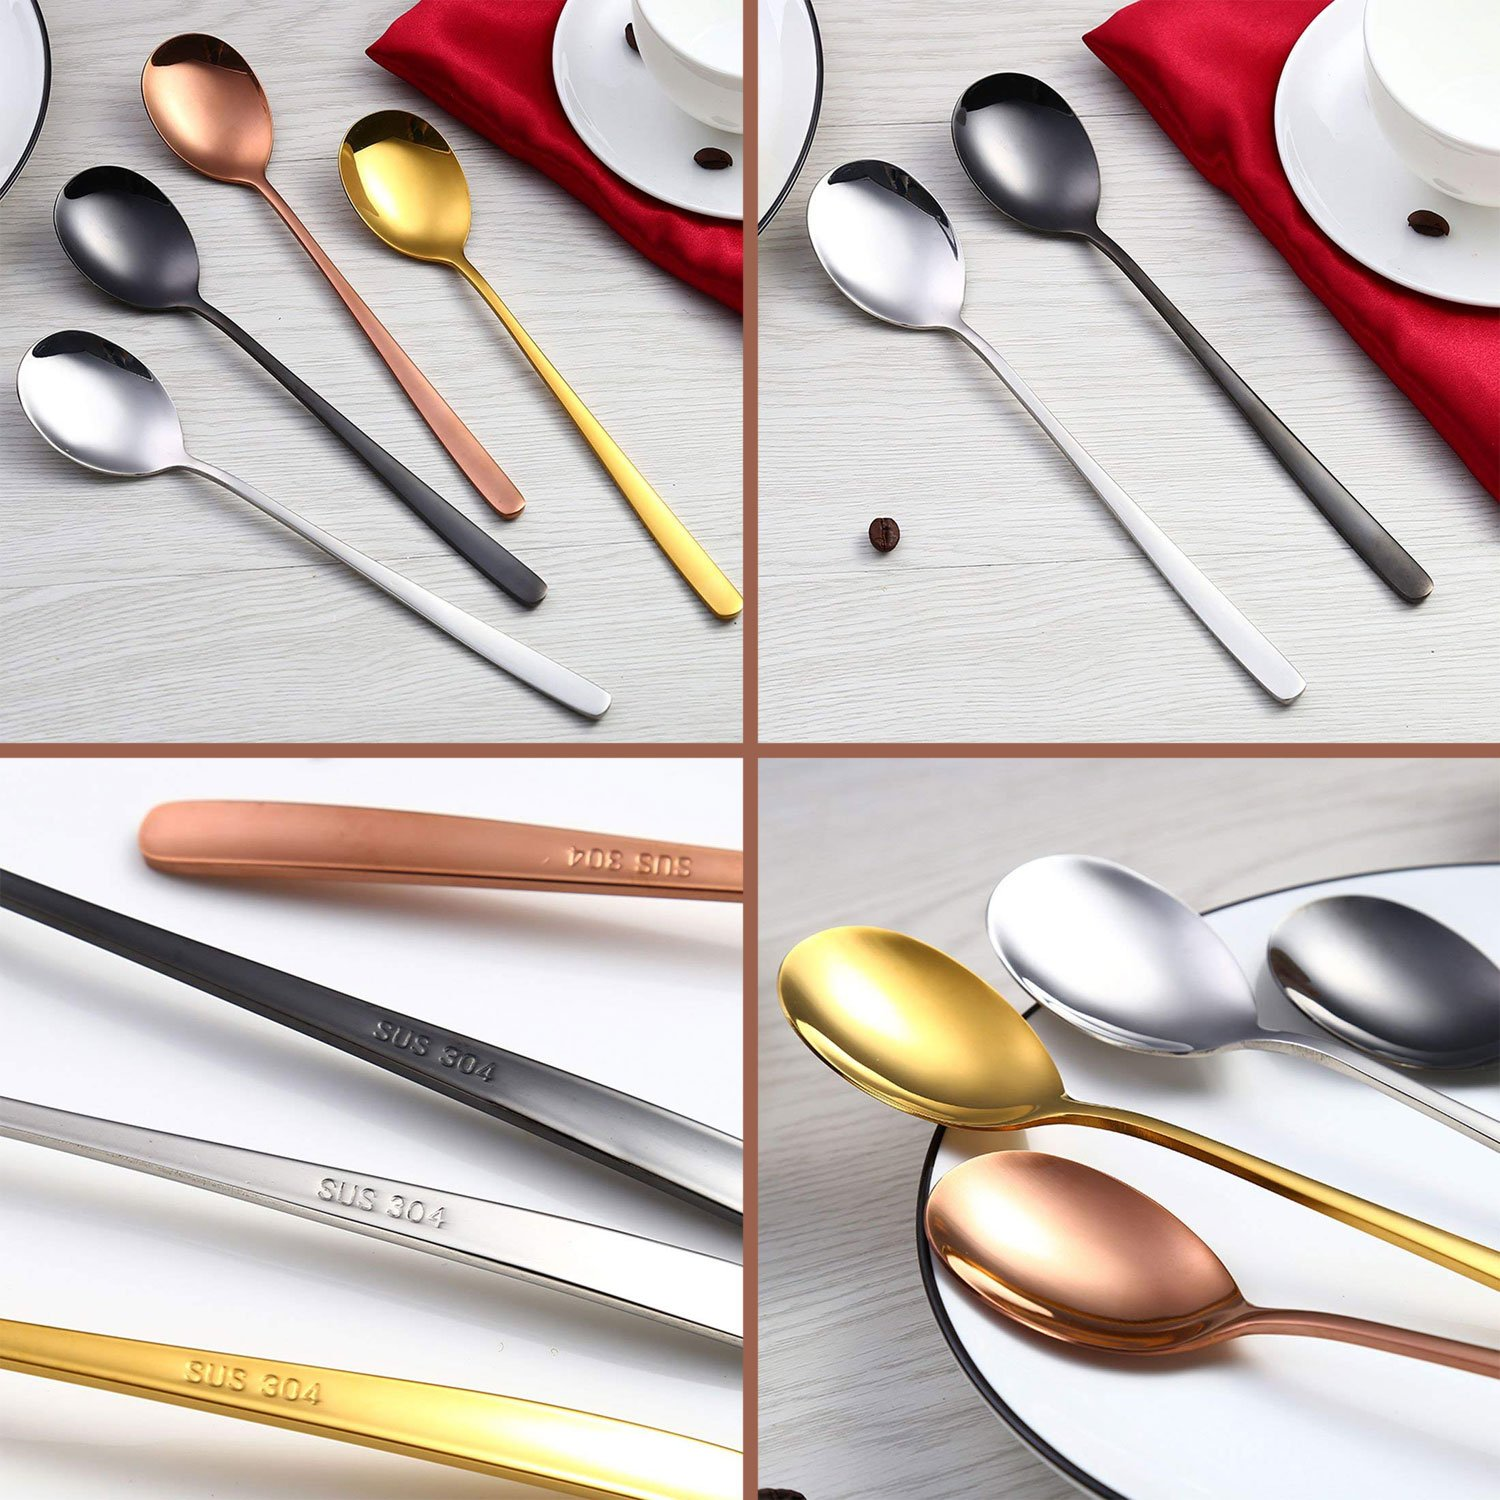 Spoons,QMFIVE,SET OF 4 Piece,Rice spoon,Soup spoon,8.3inch Color stainless steel spoon,Chic and elegant by QMFIVE (Image #5)